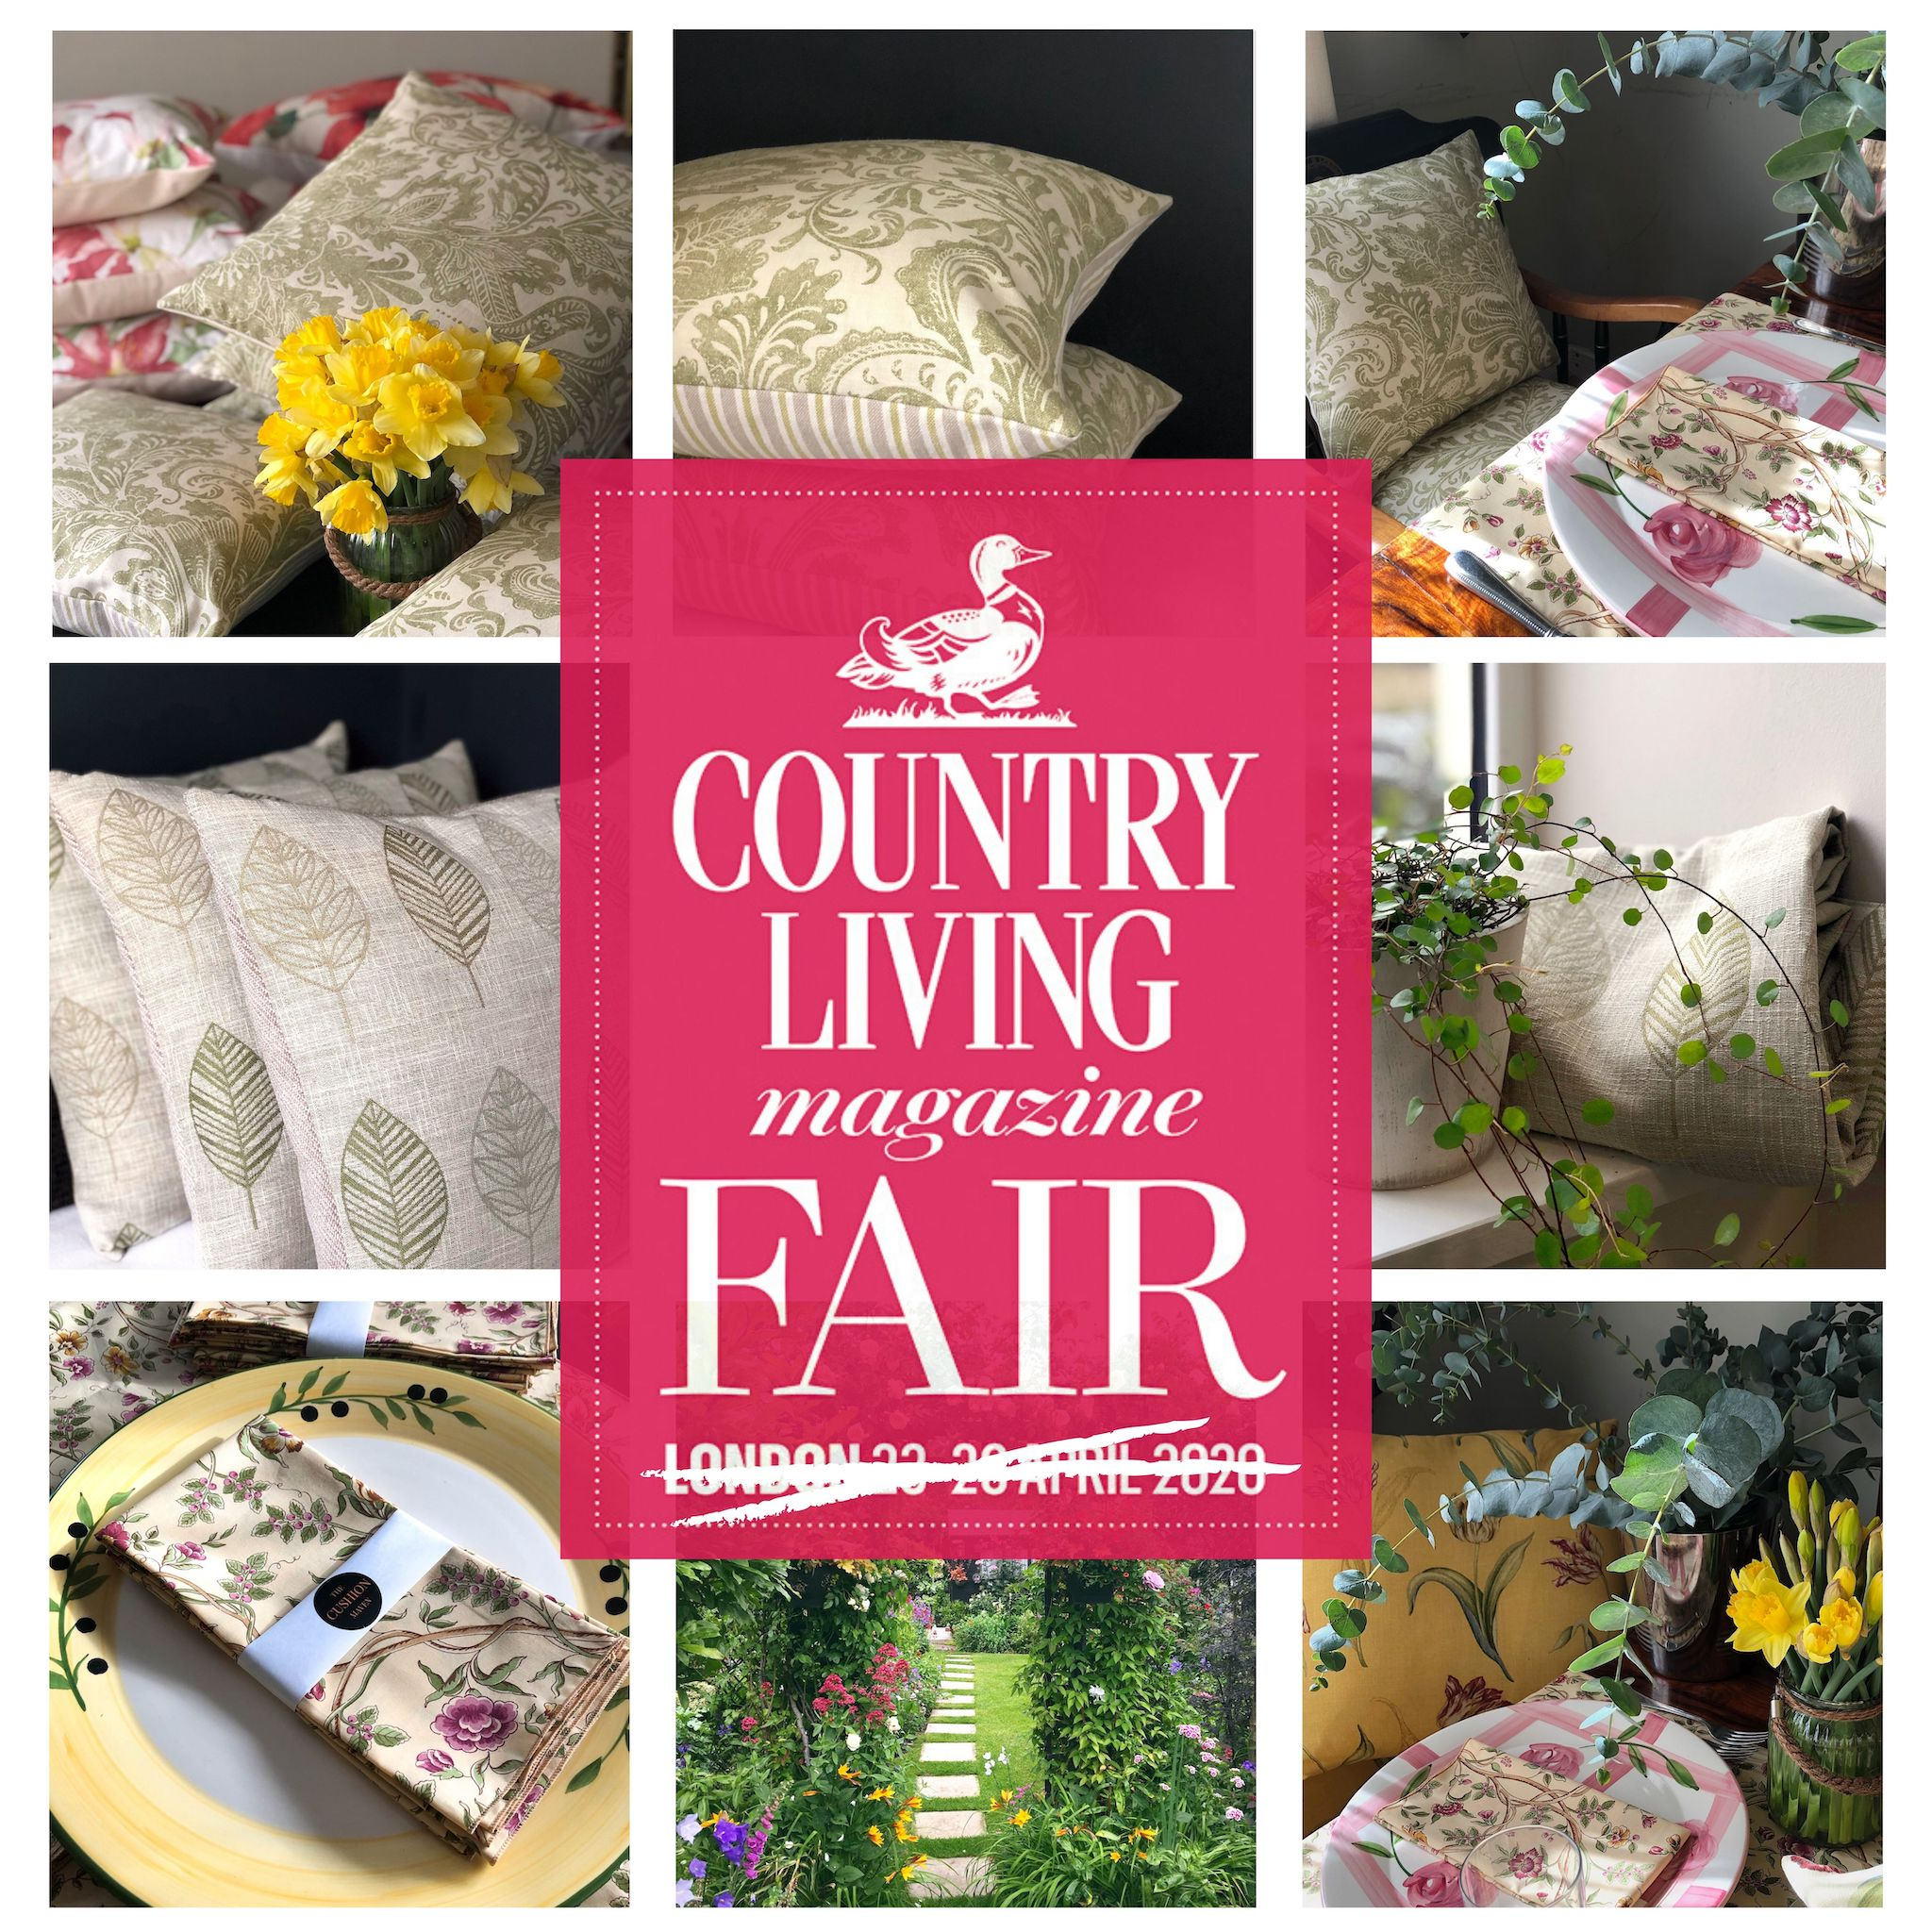 The Cushion Maven at The Country Living Fair 2020